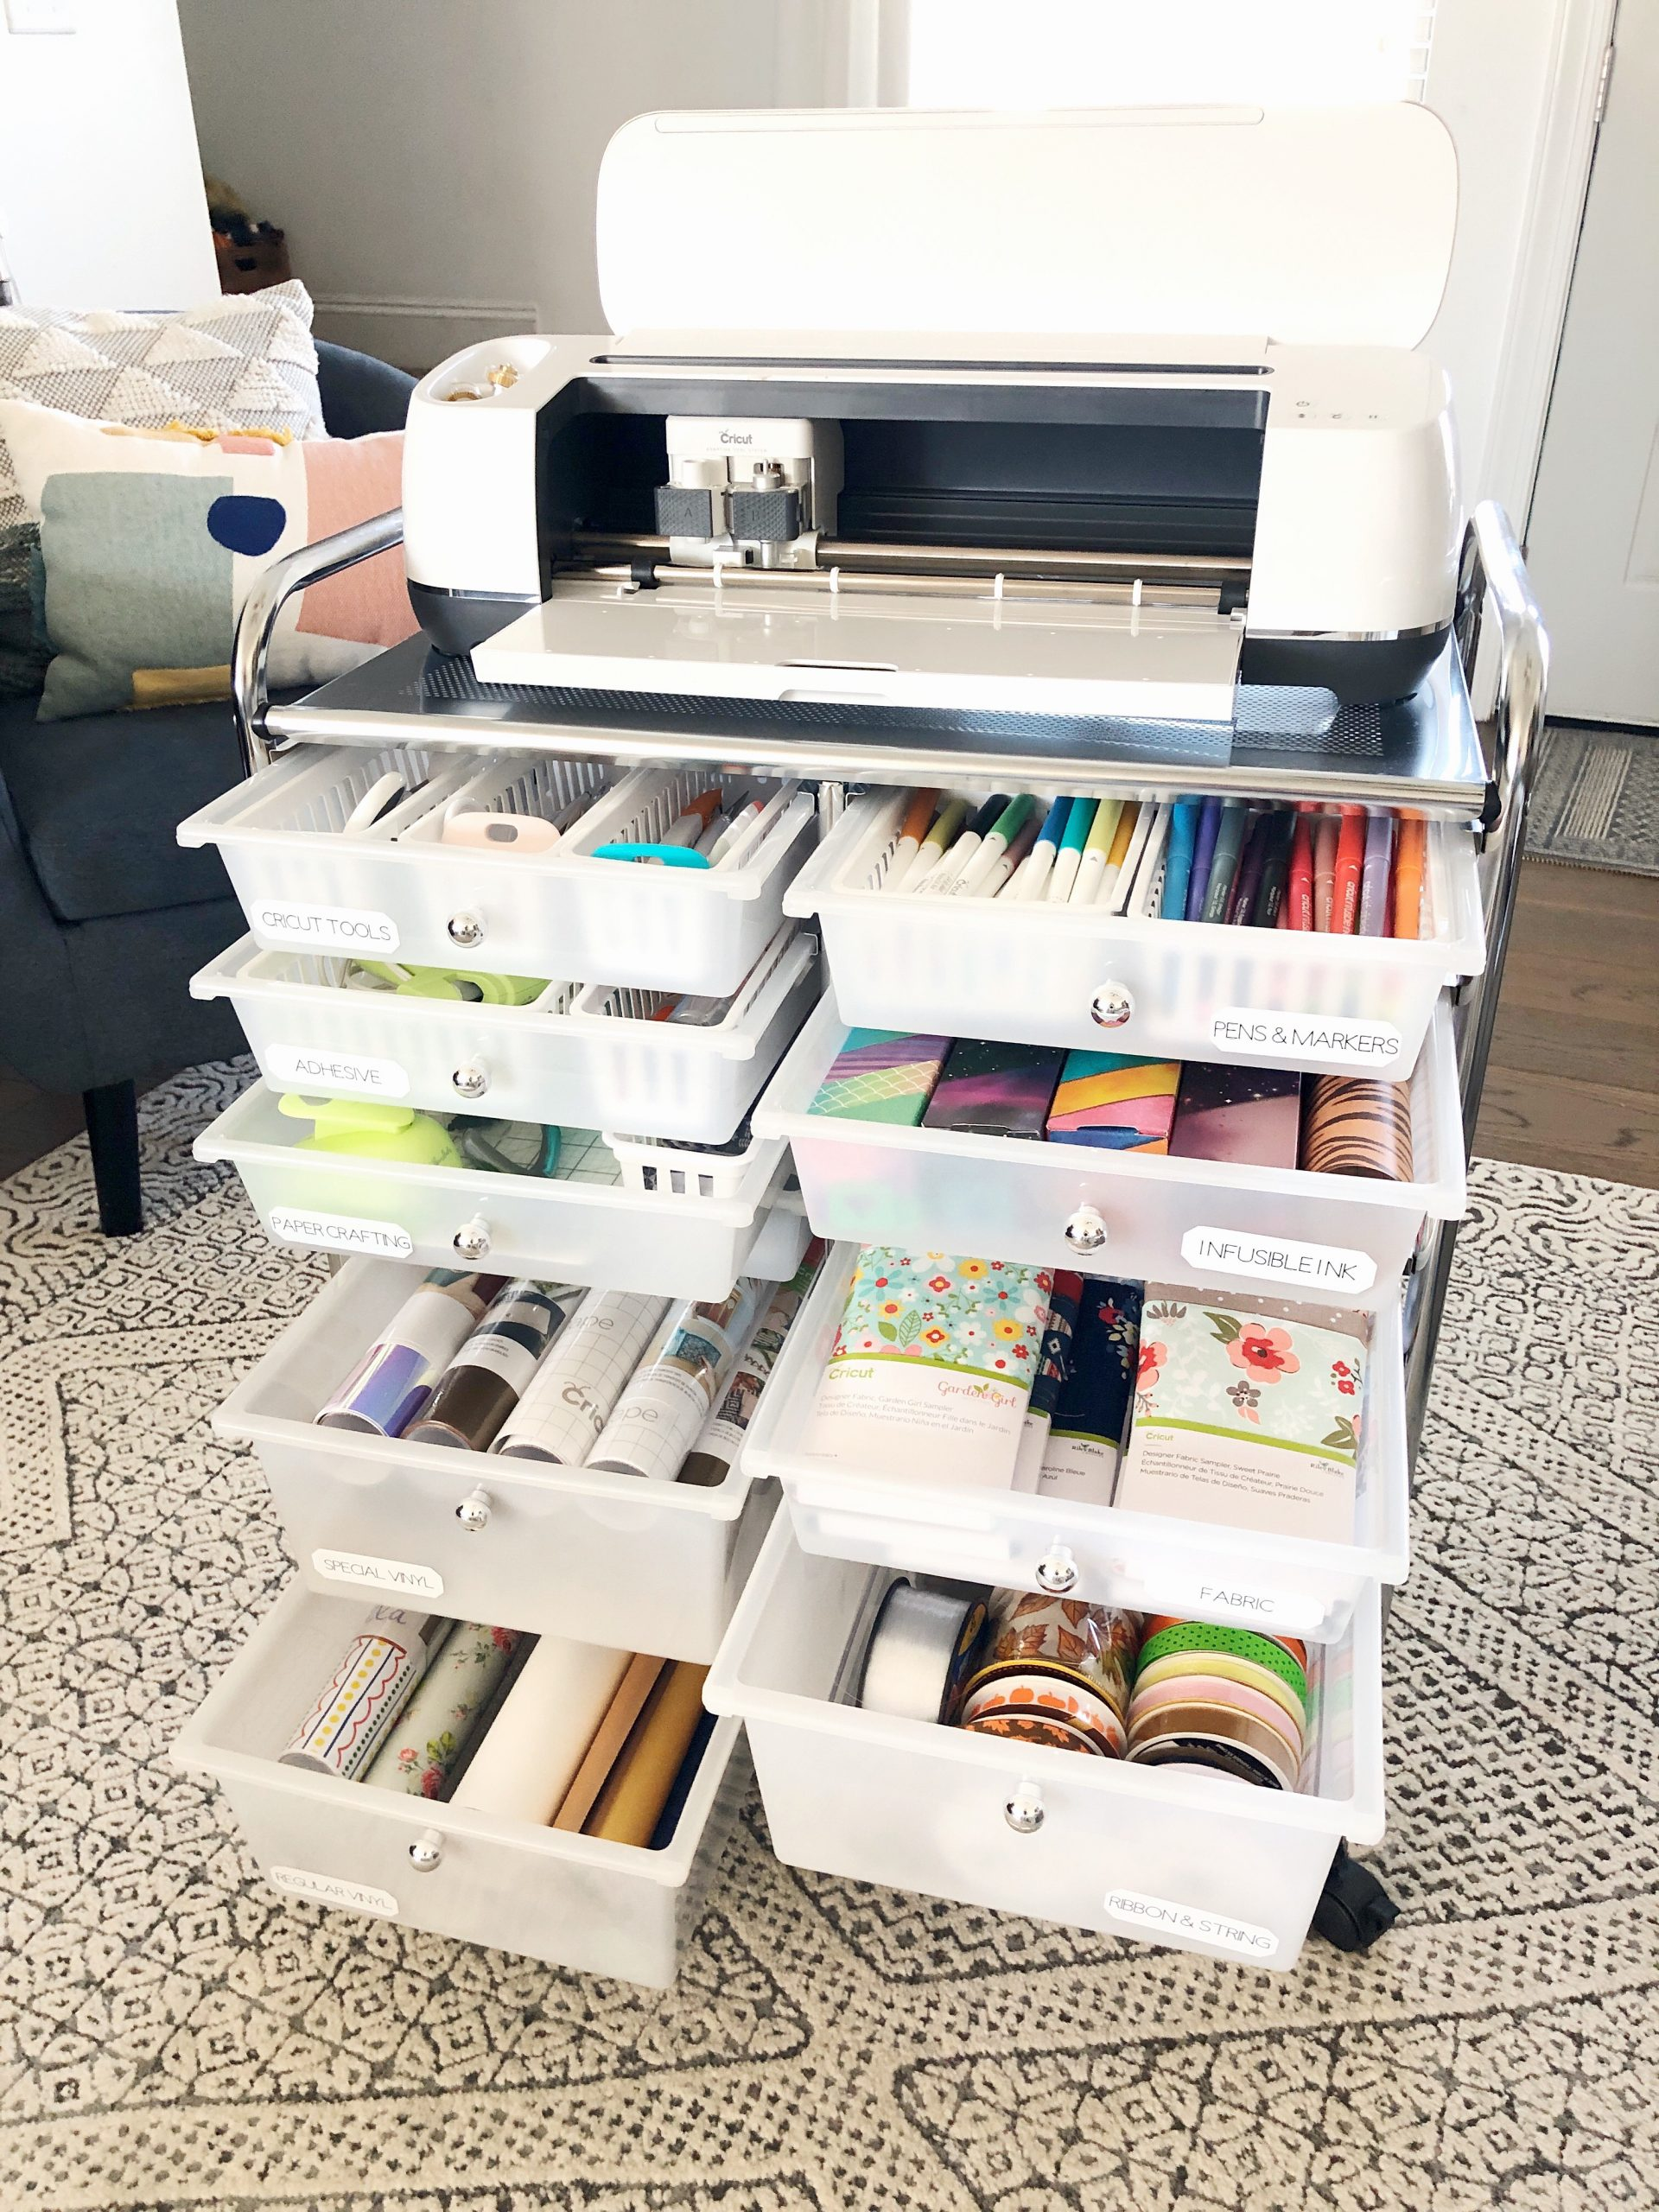 A Look Inside My Cricut Craft Cart Organized Ish By Lela Burris